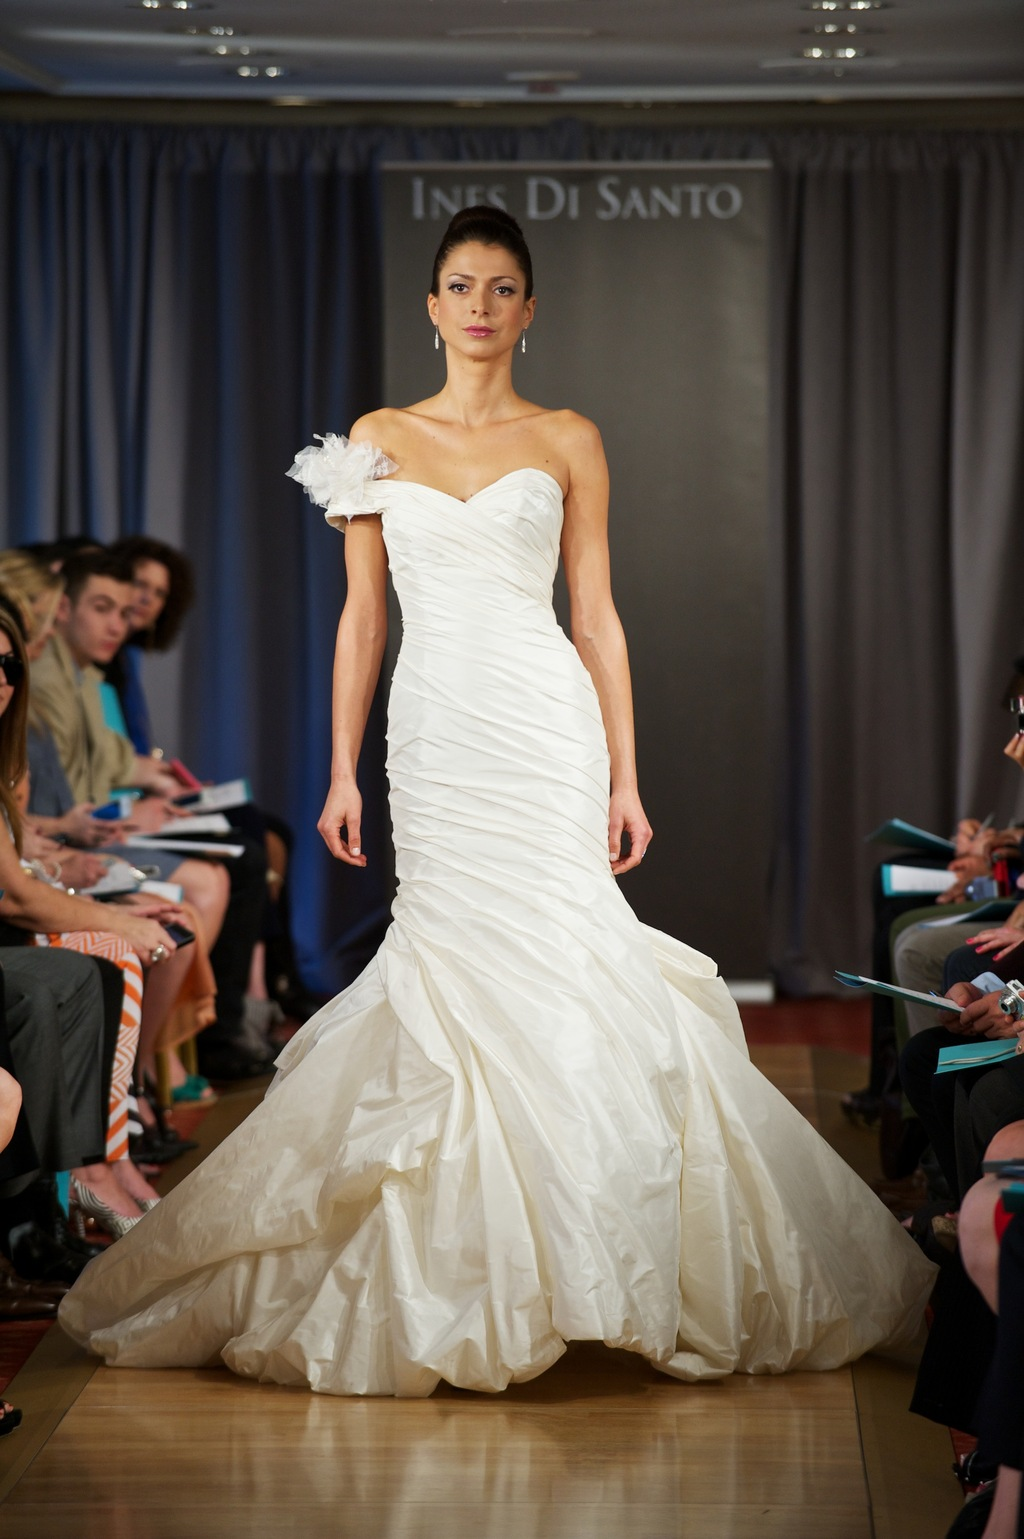 Wedding-dress-spring-2013-bridal-gowns-ines-di-santo-1.full